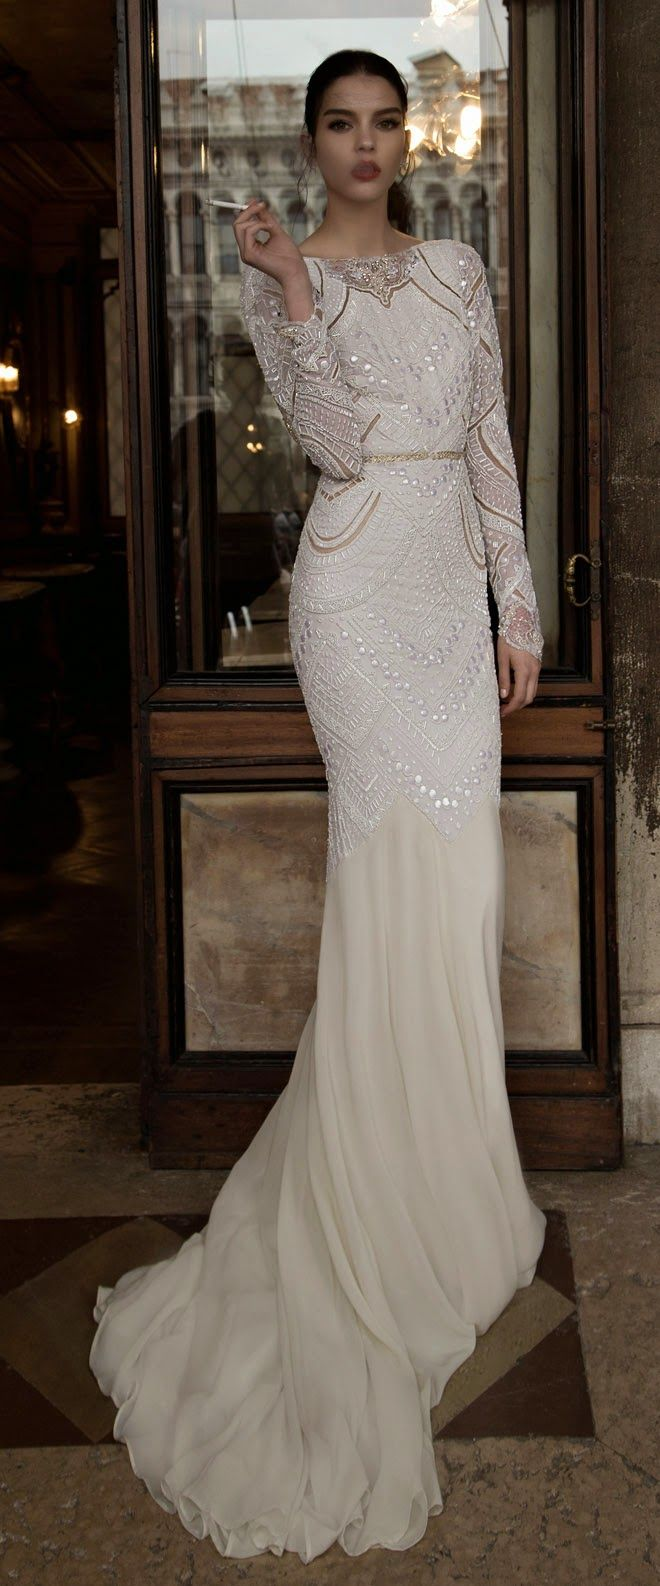 Inbal Dror 2015 Bridal Collection | bellethemagazine.com